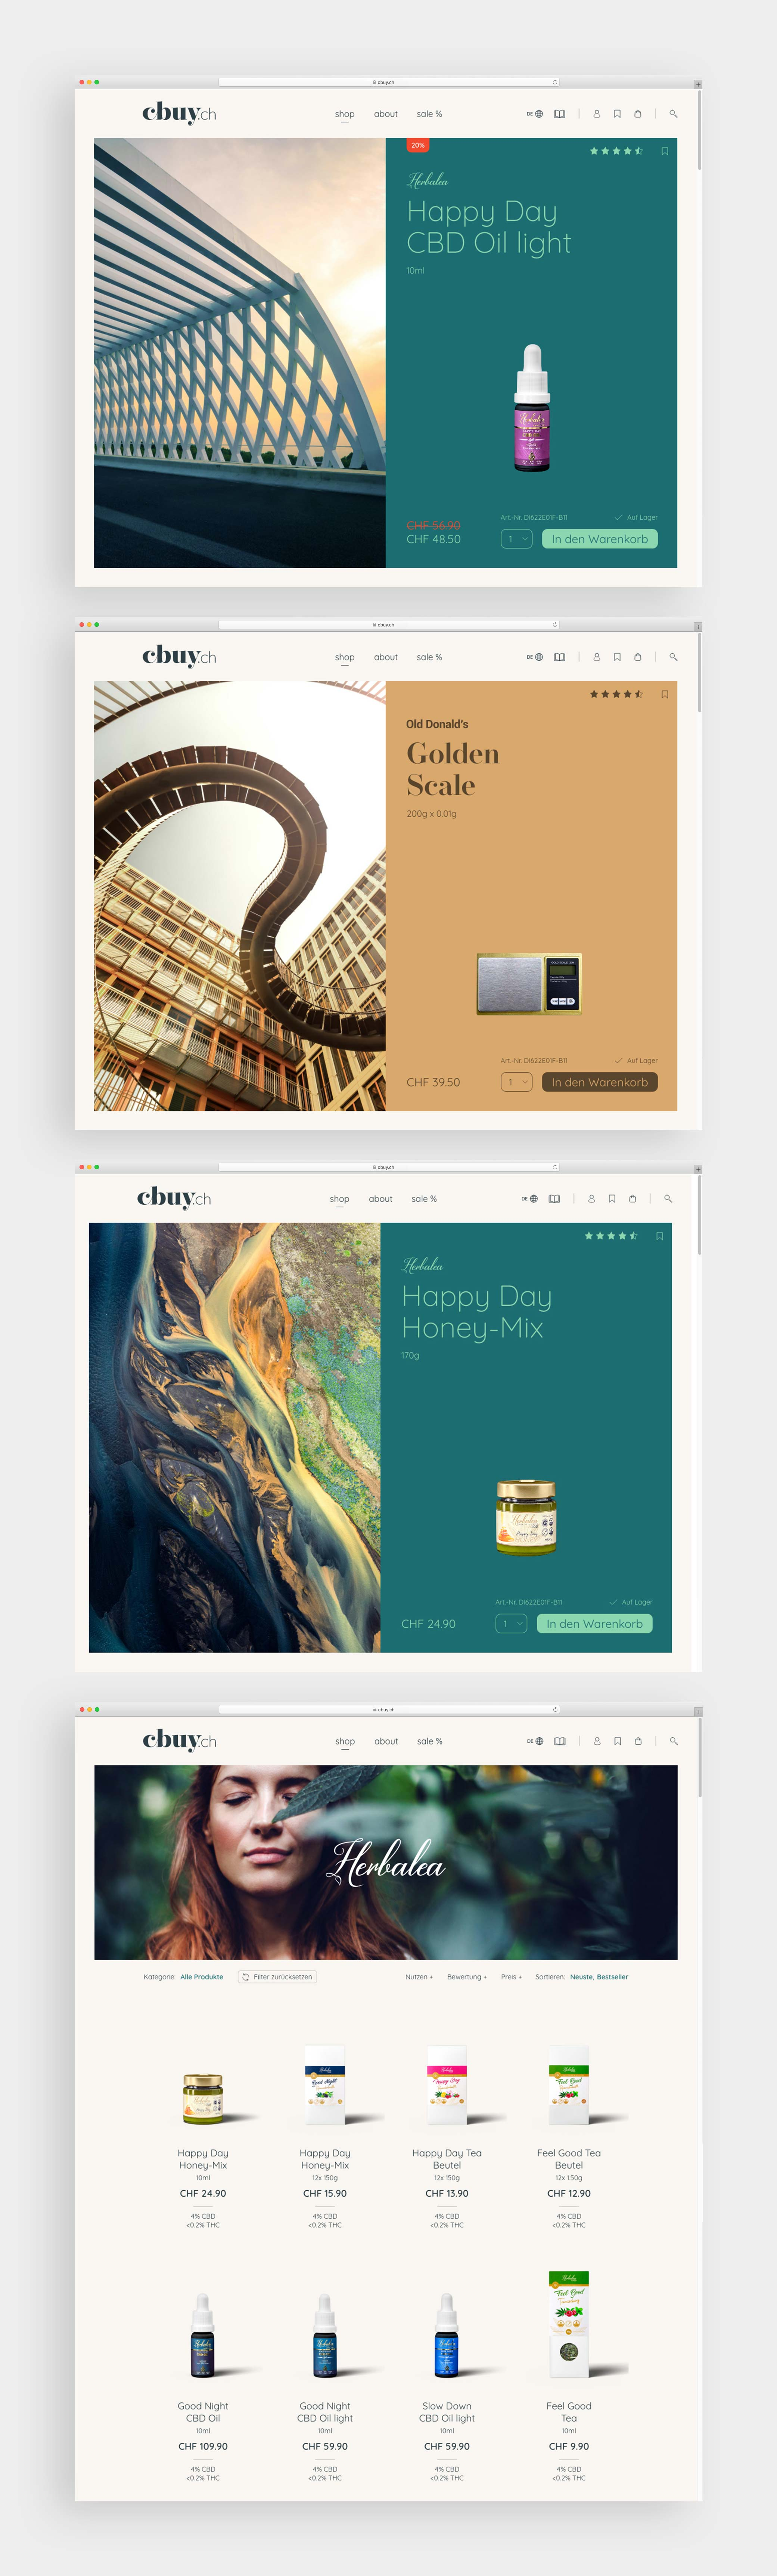 cbuy_website_pages_mockup